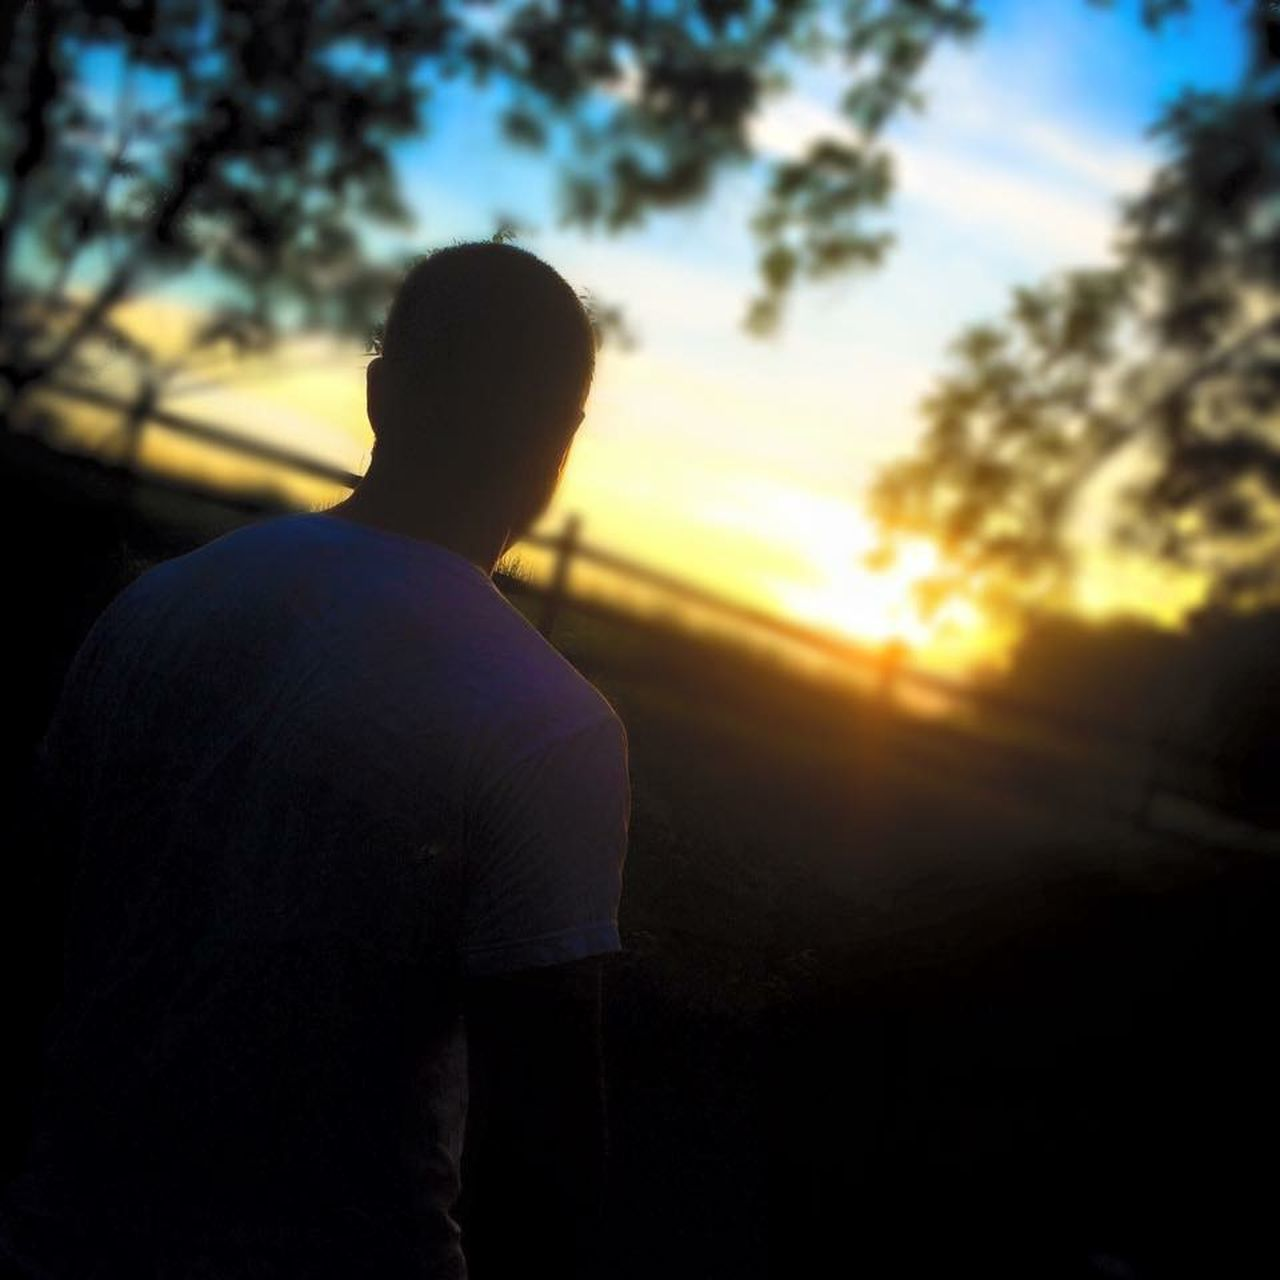 sunset, silhouette, one person, rear view, outdoors, sunlight, tree, sky, one man only, men, real people, nature, only men, day, adult, adults only, people